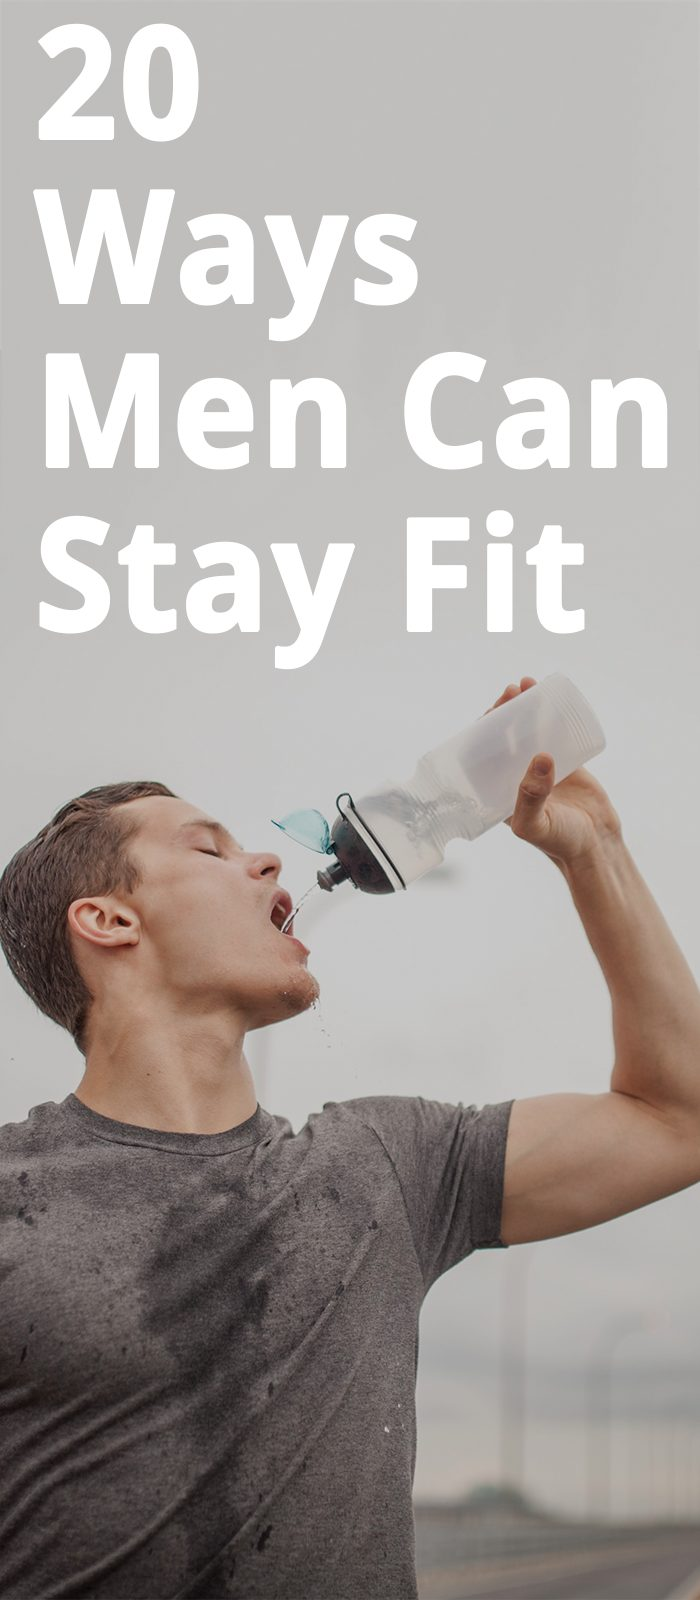 20 Ways Men Can Stay Fit